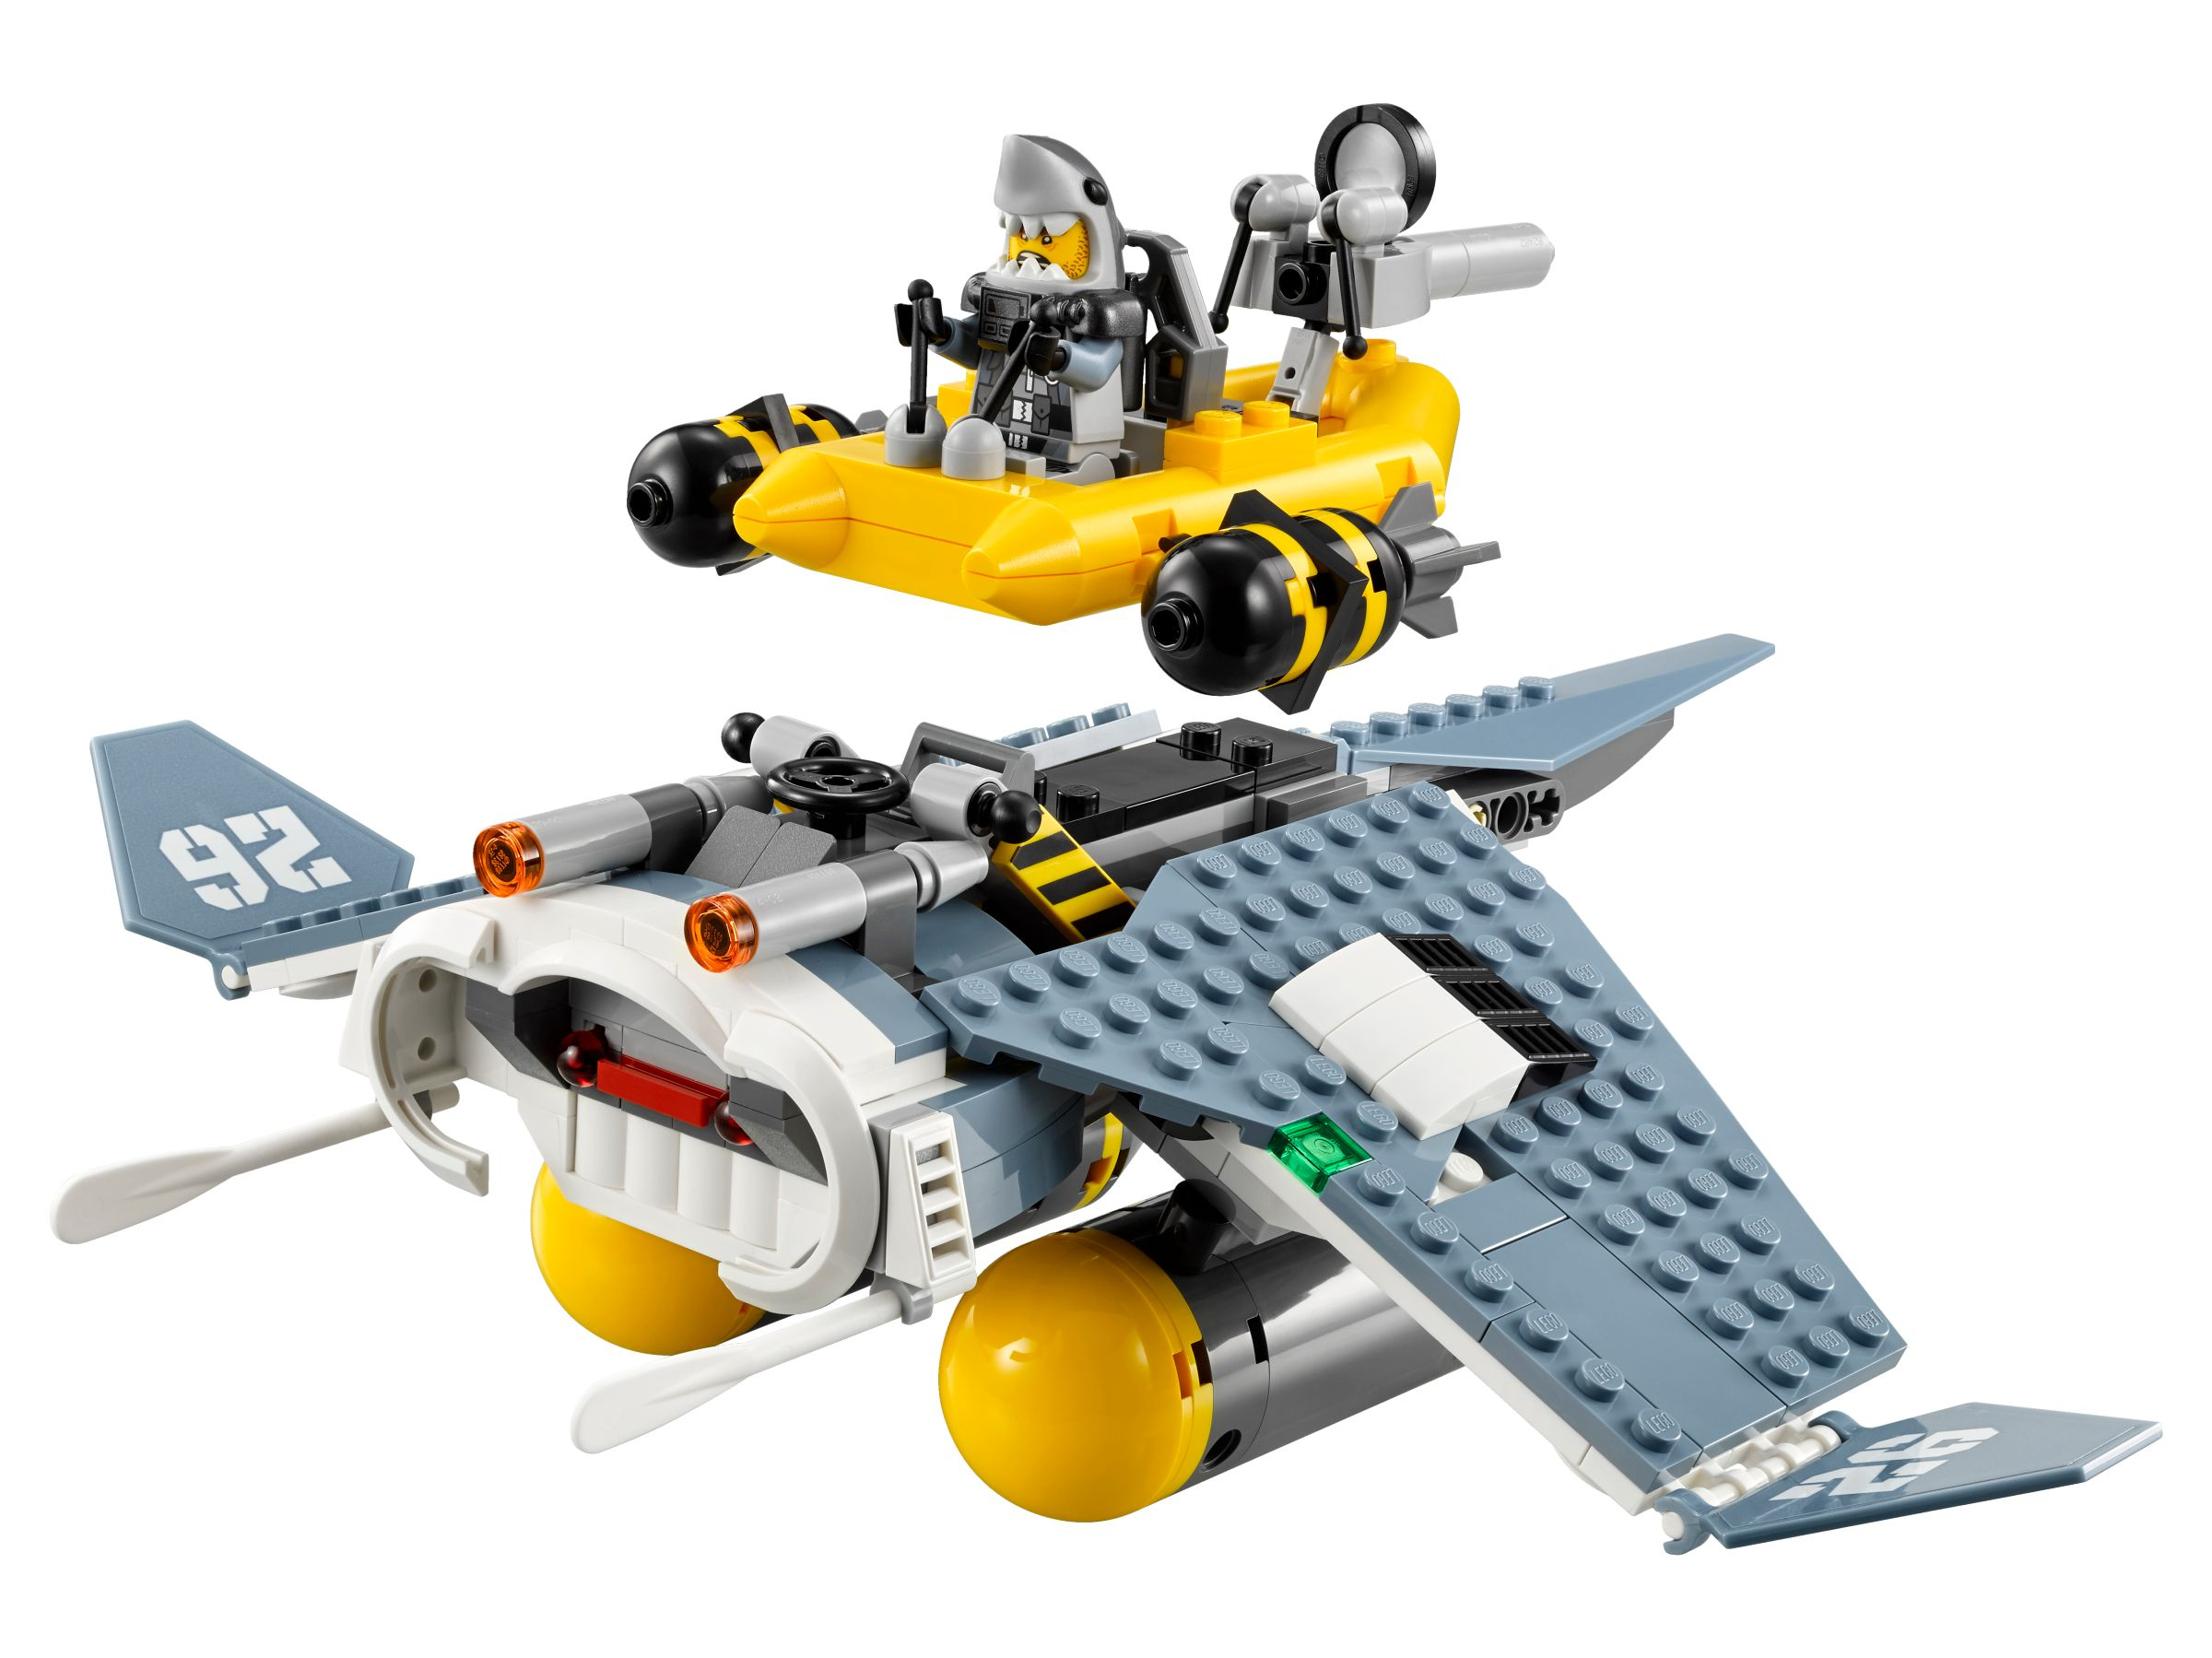 LEGO The LEGO Ninjago Movie 70609 Mantarochen-Flieger LEGO_70609_alt5.jpg